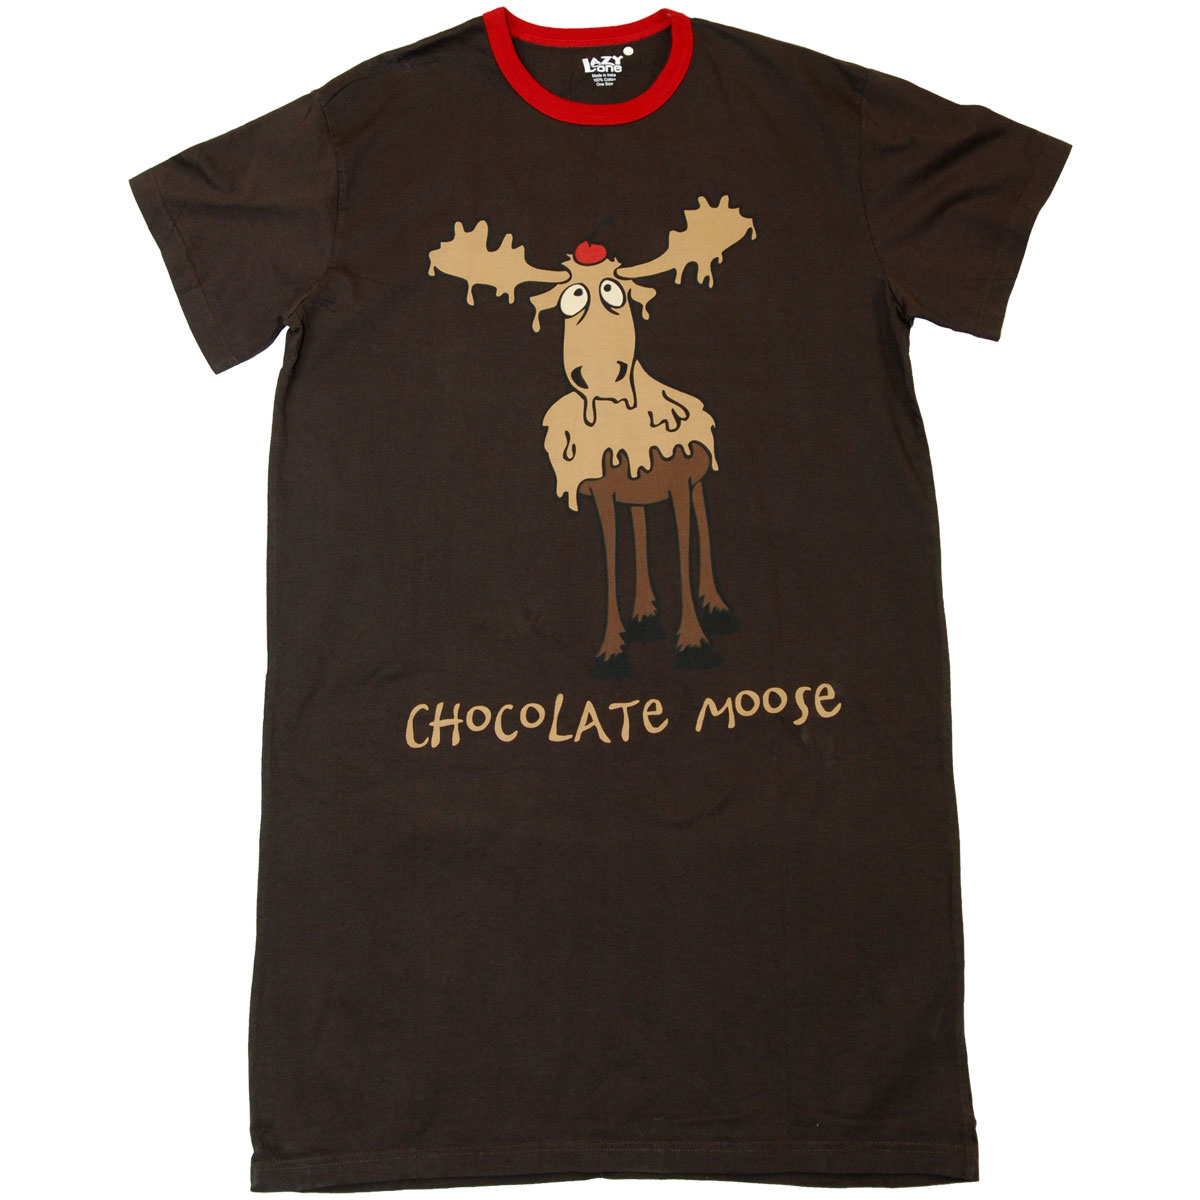 Nightshirt - Chocolate Moose